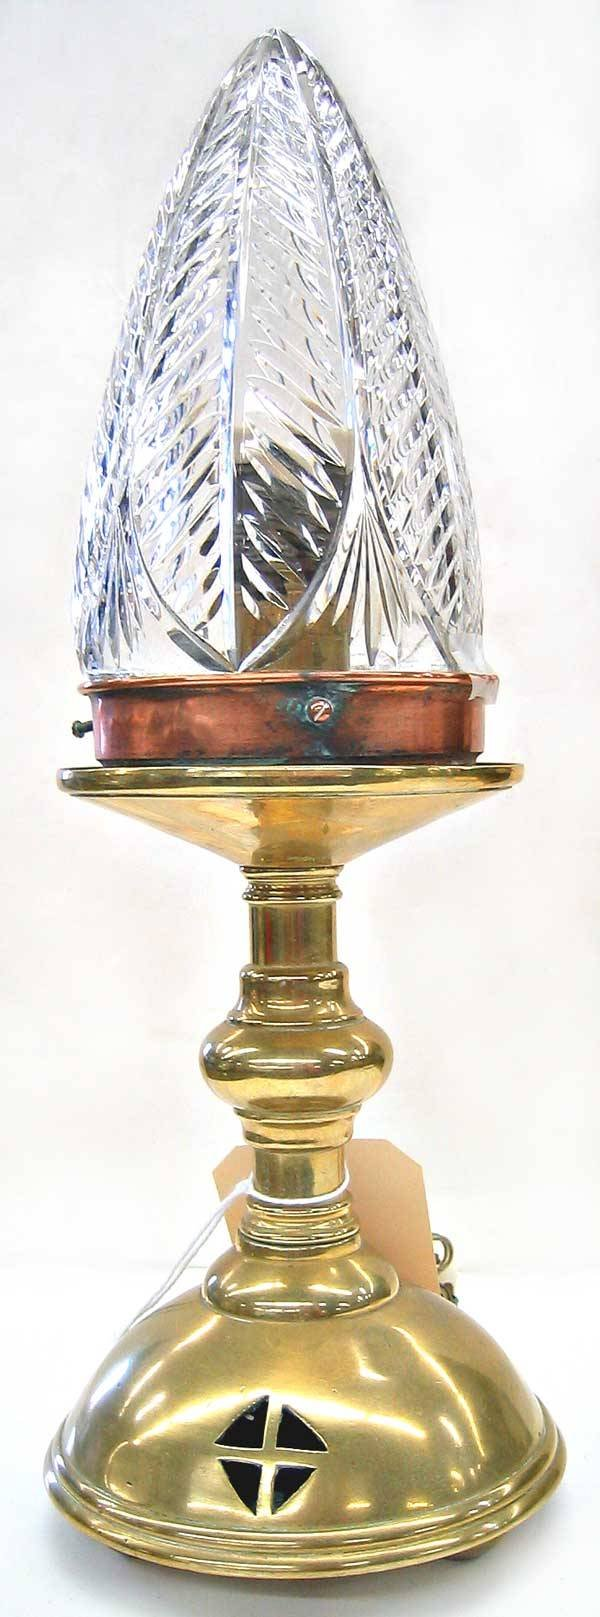 6972: Brass table lamp